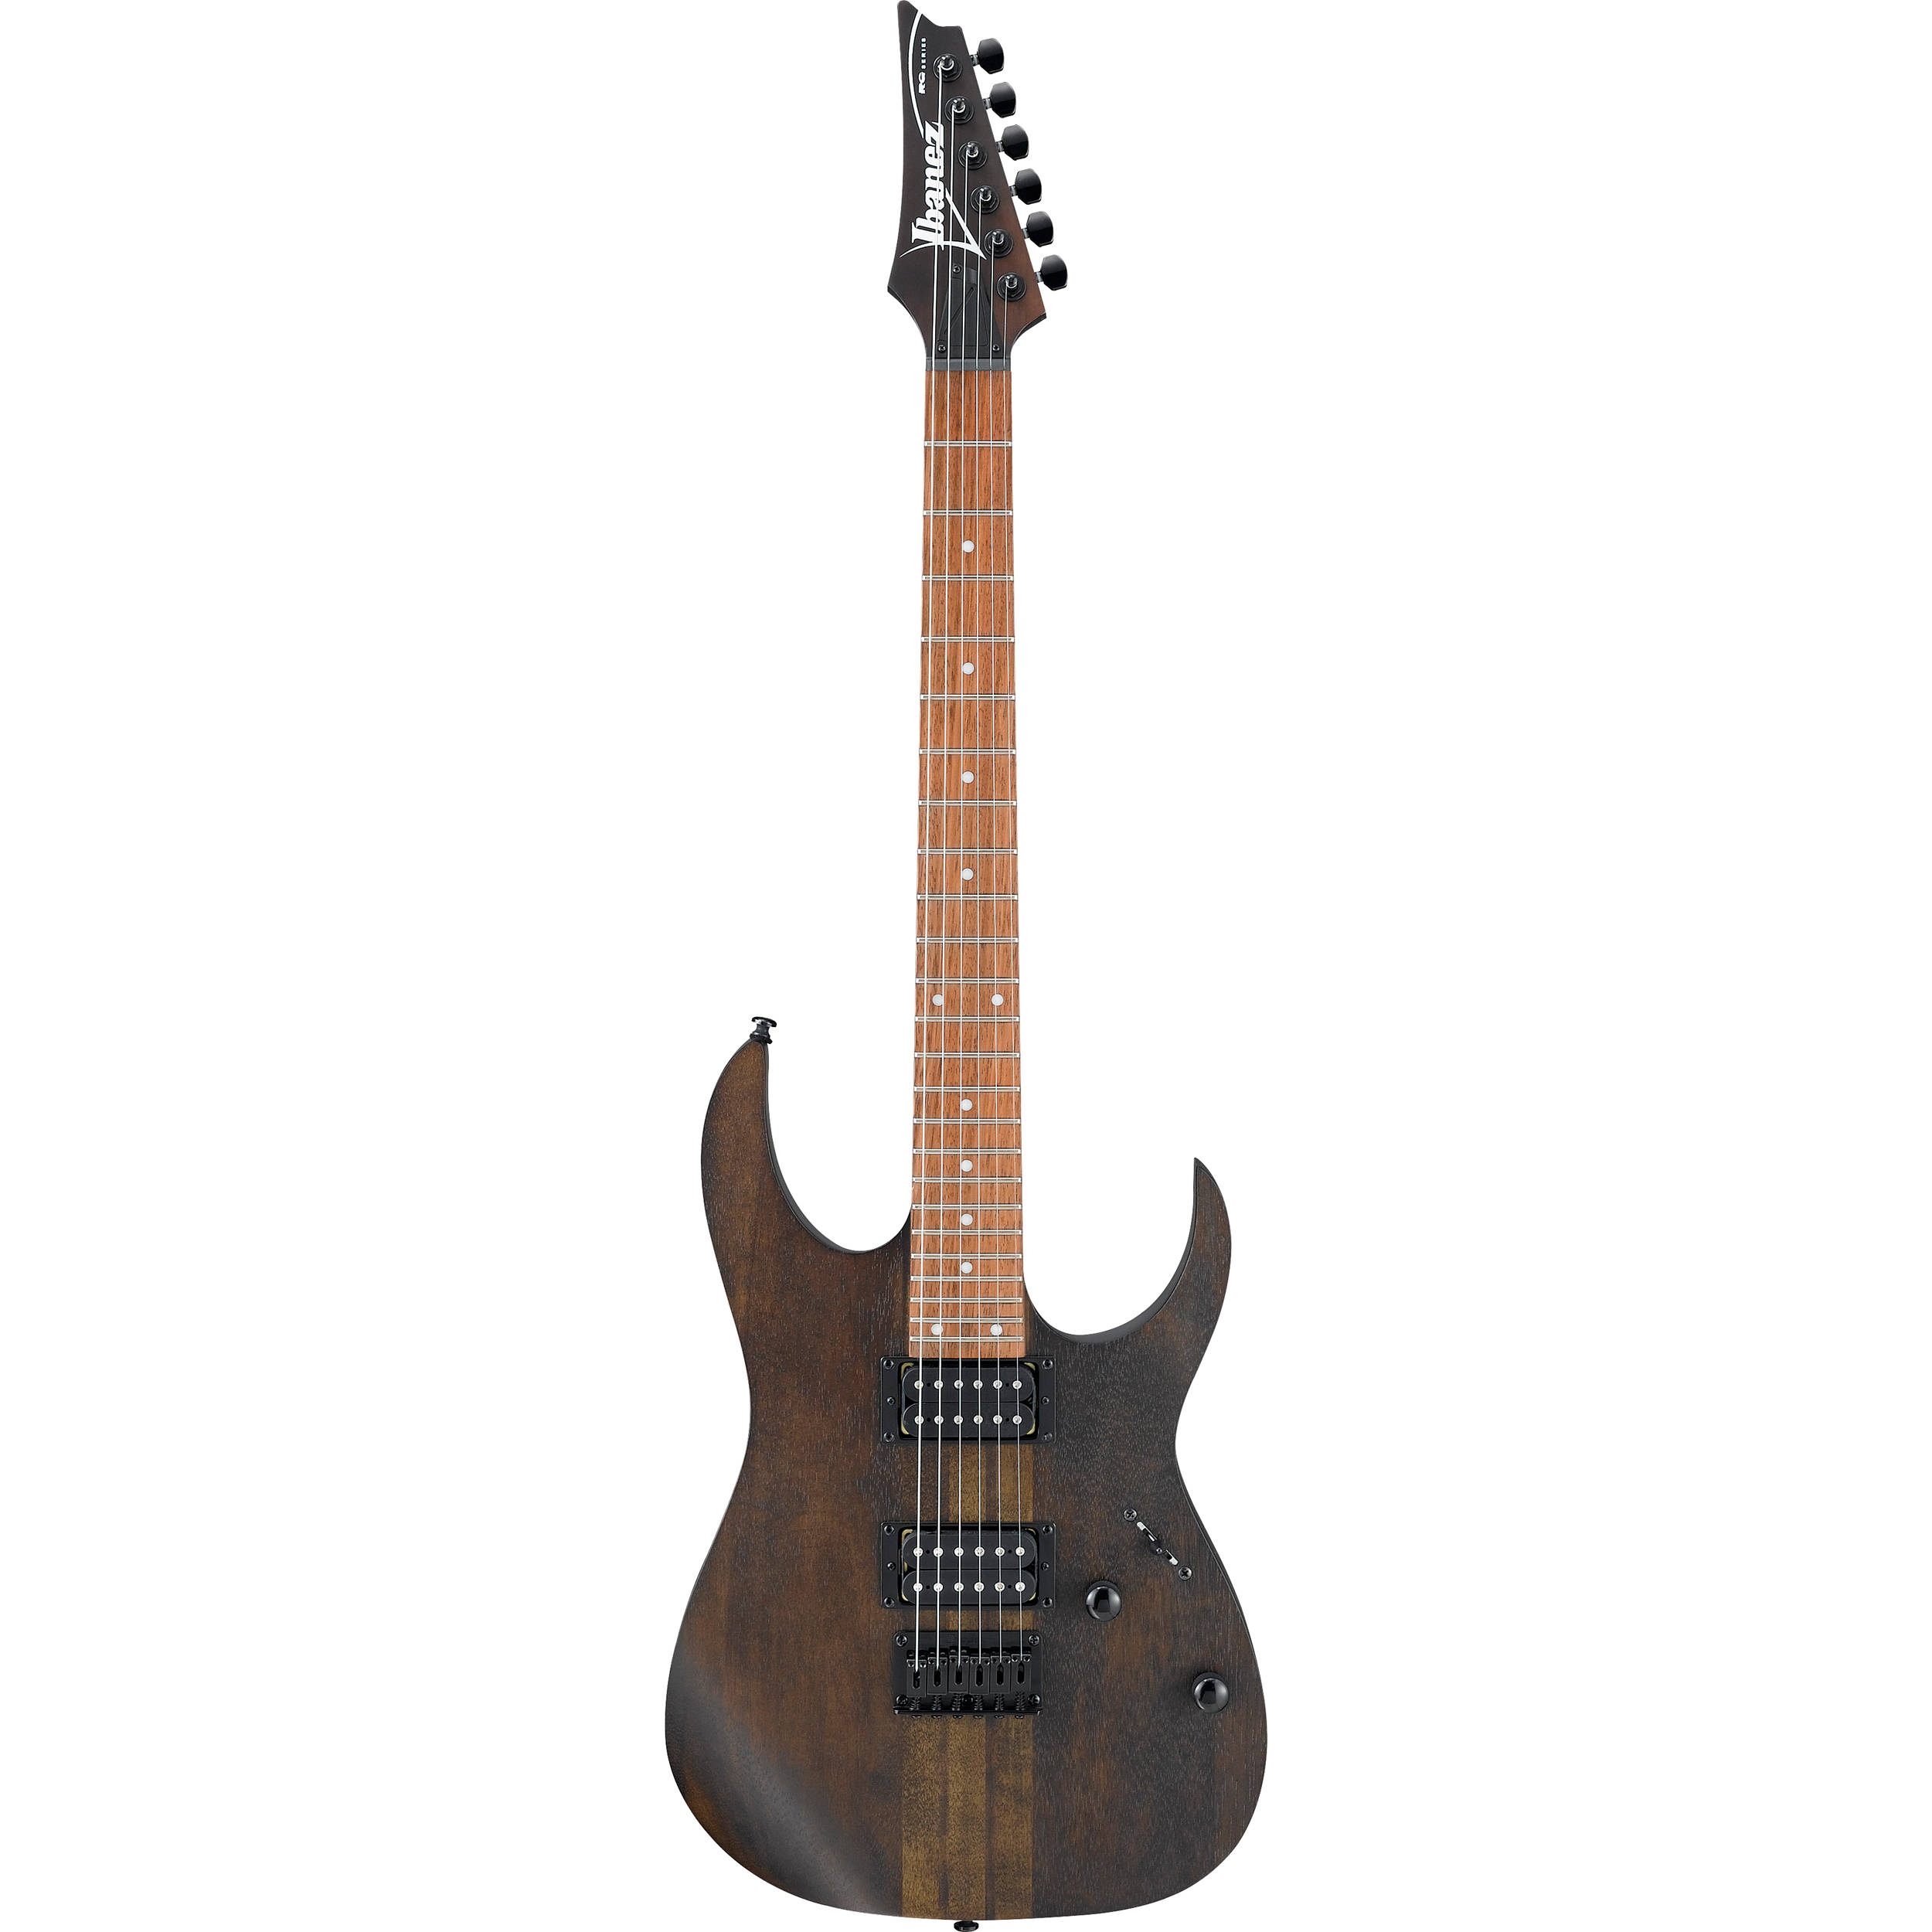 ibanez rgrt421 rg standard series electric guitar rgrt421wnf b h. Black Bedroom Furniture Sets. Home Design Ideas